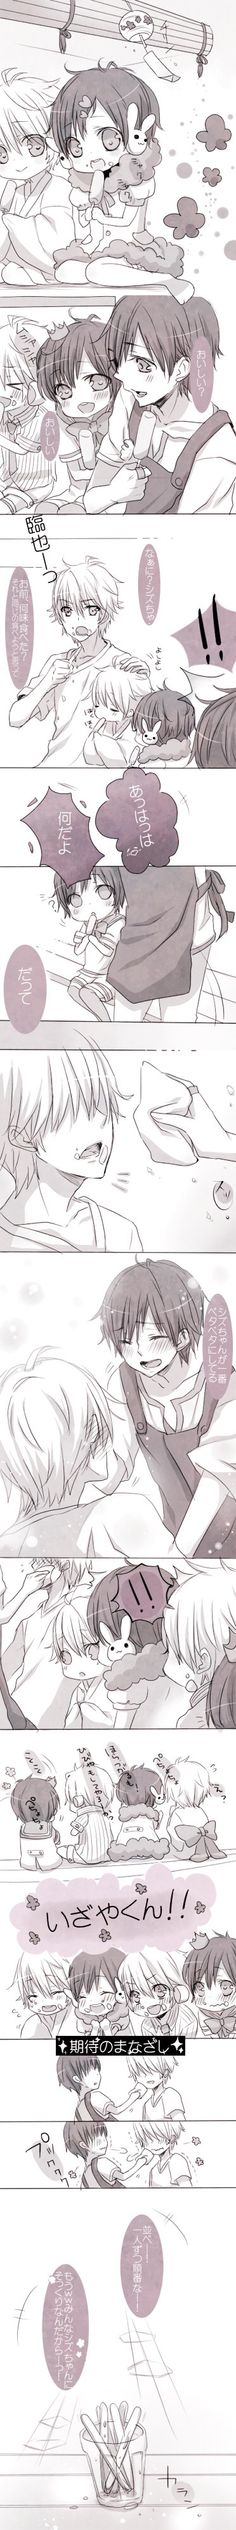 Too cute!!! Couldn't pass this up. . . Still don't ship shizaya but this is just to adorable